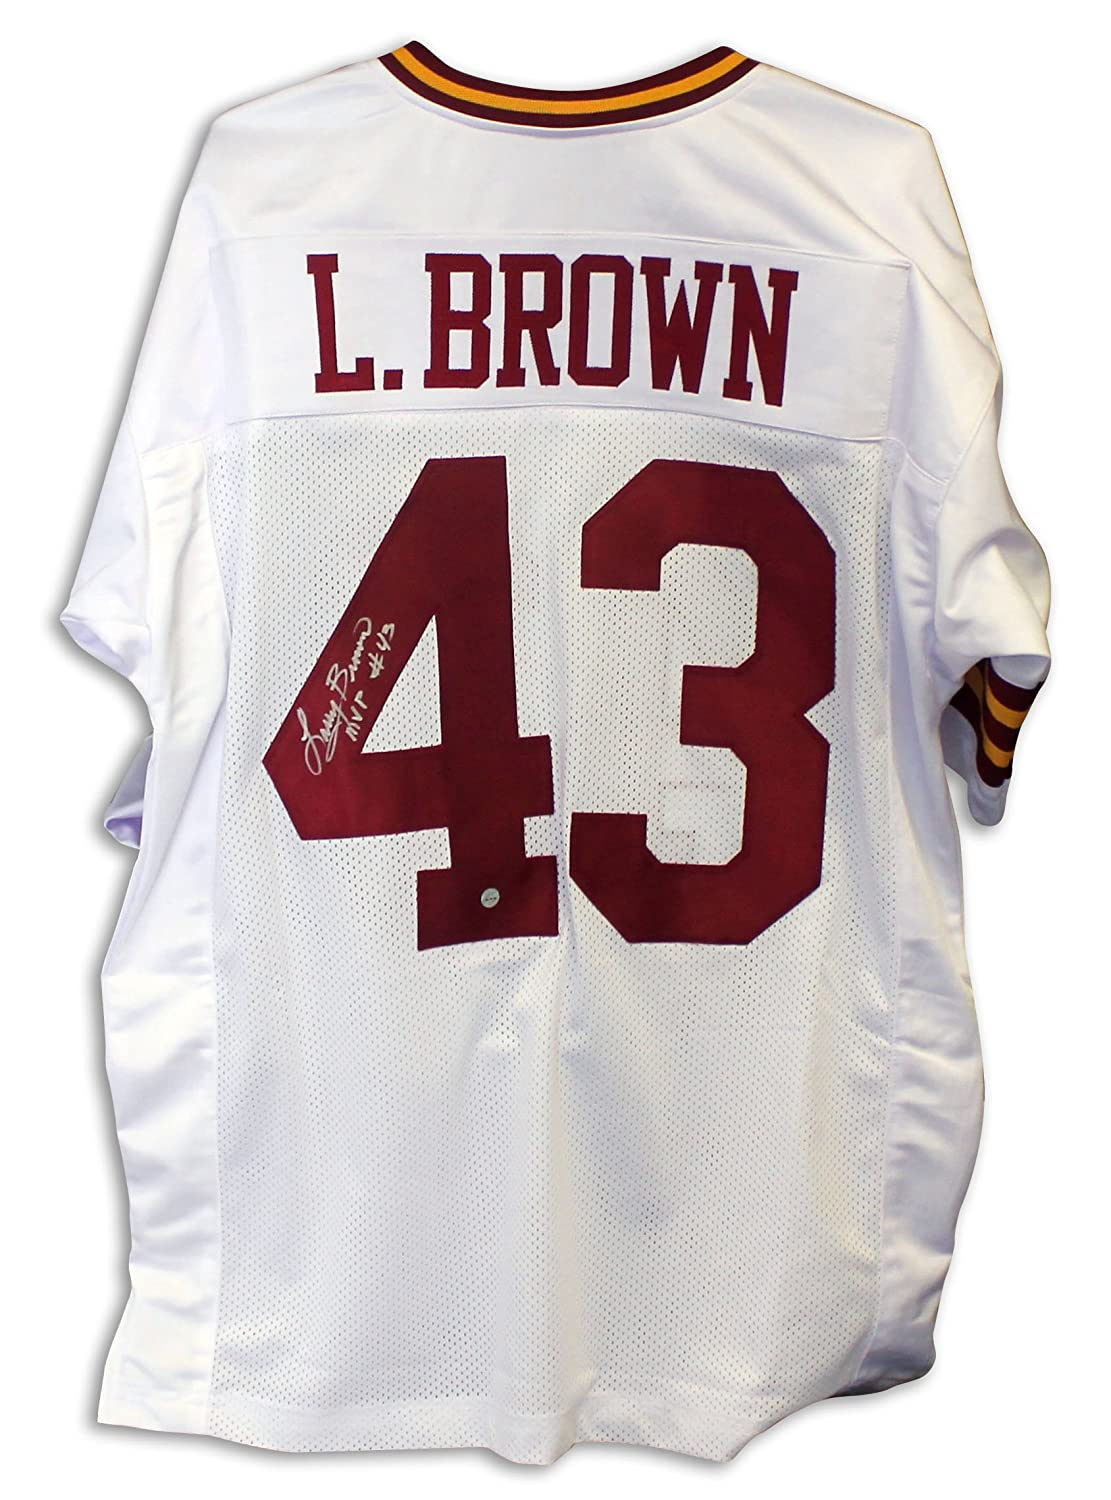 Larry Brown Washington Redskins Autographed White Jersey Inscribed 'MVP' -APE COA